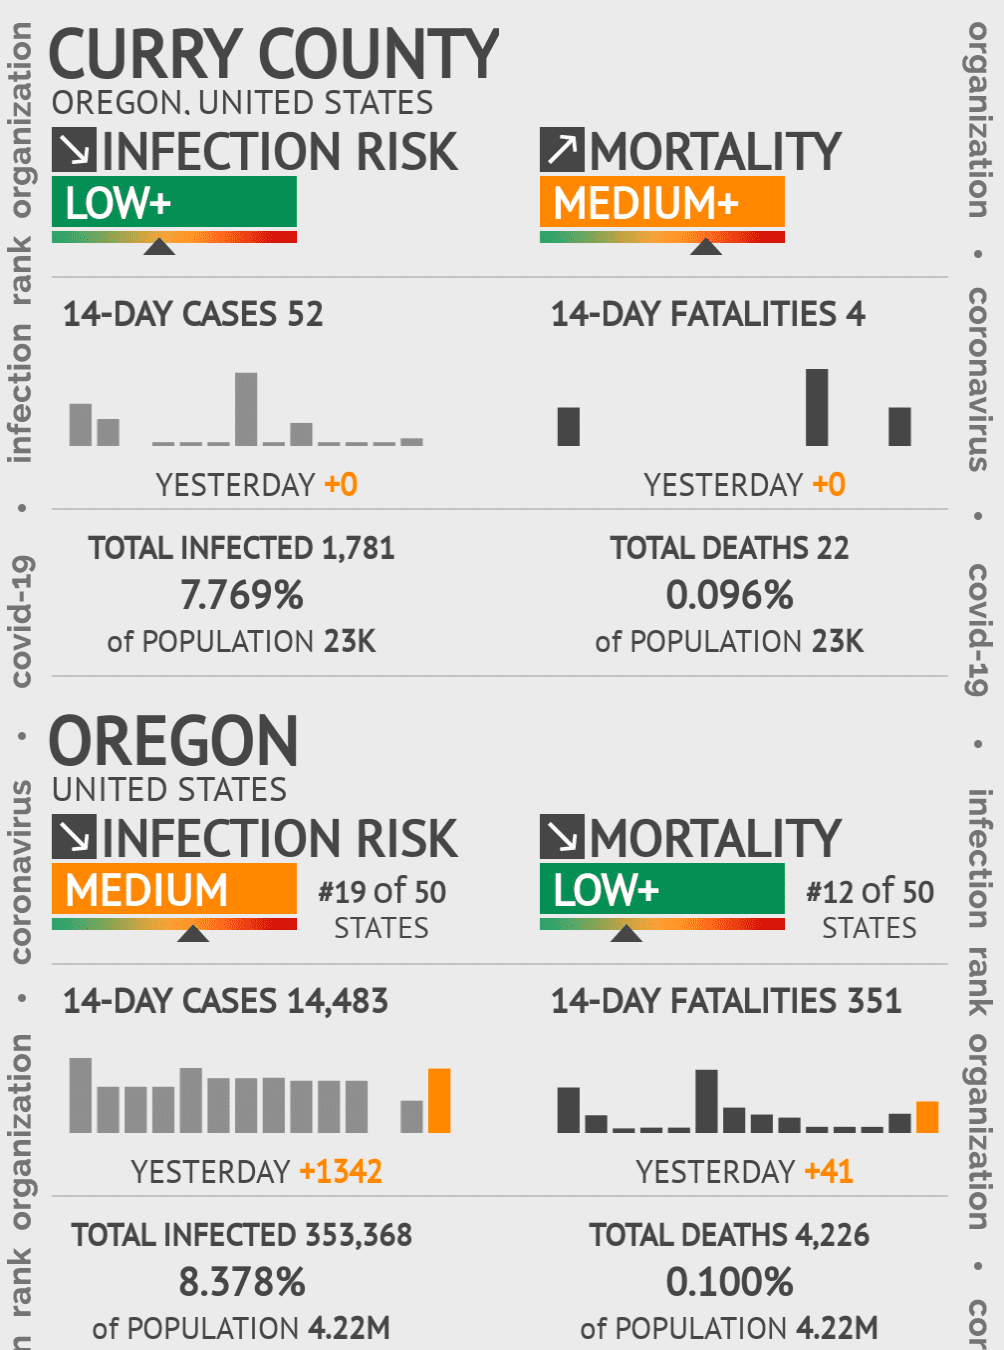 Curry County Coronavirus Covid-19 Risk of Infection on March 23, 2021